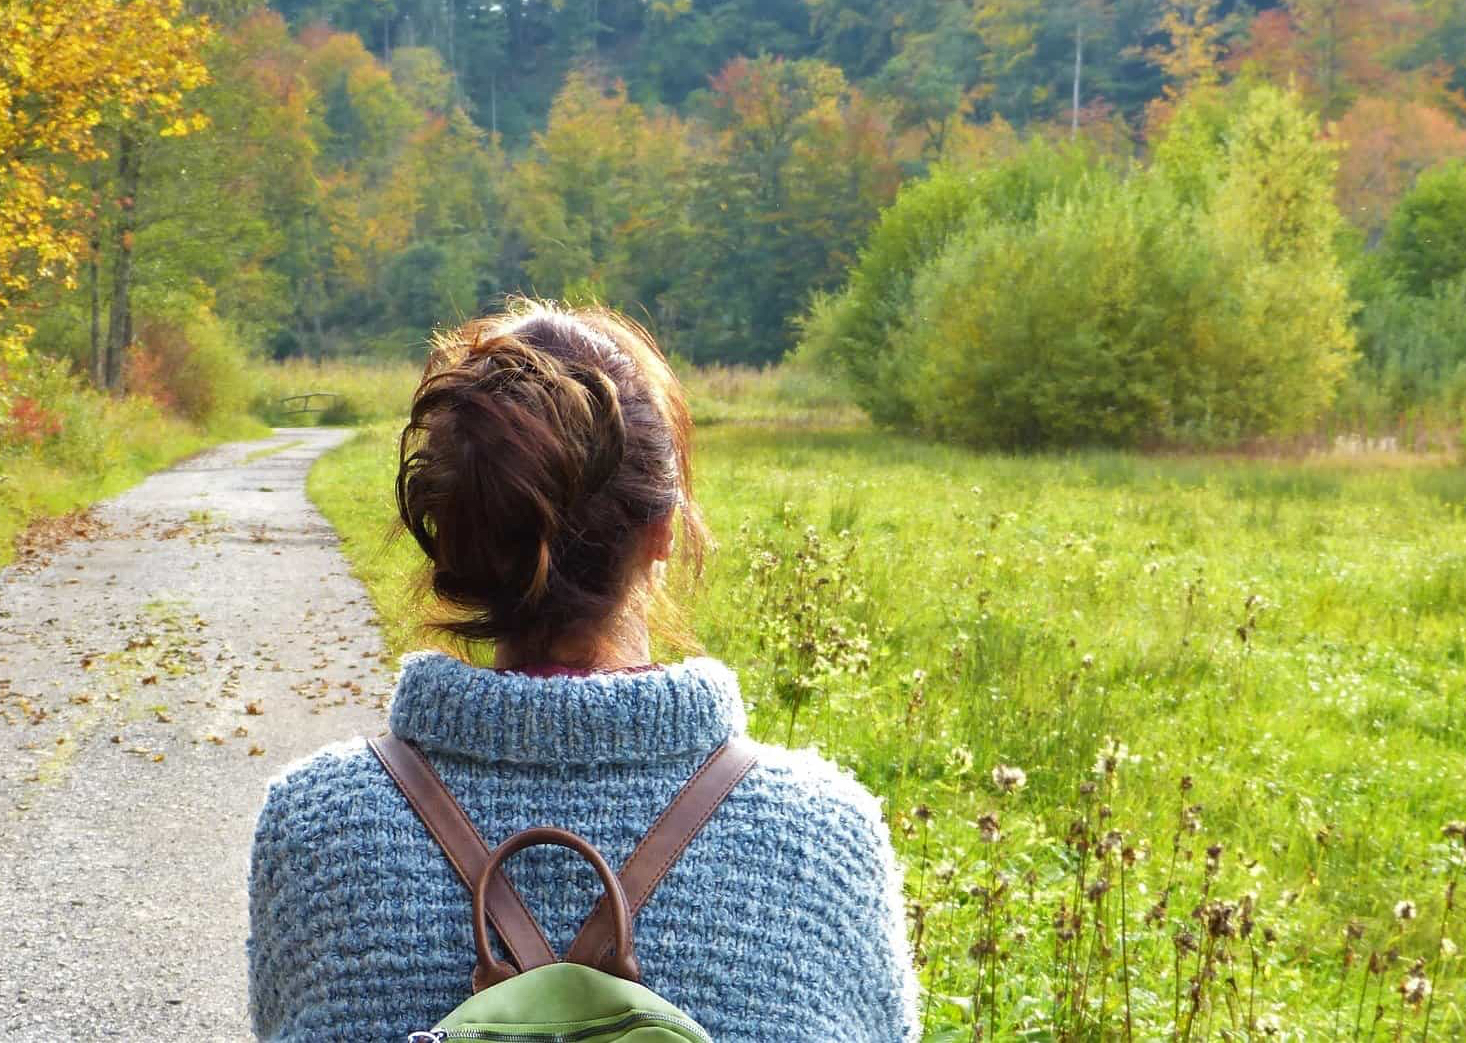 Three Little Tips for Optimum Health and Wellbeing this Autumn